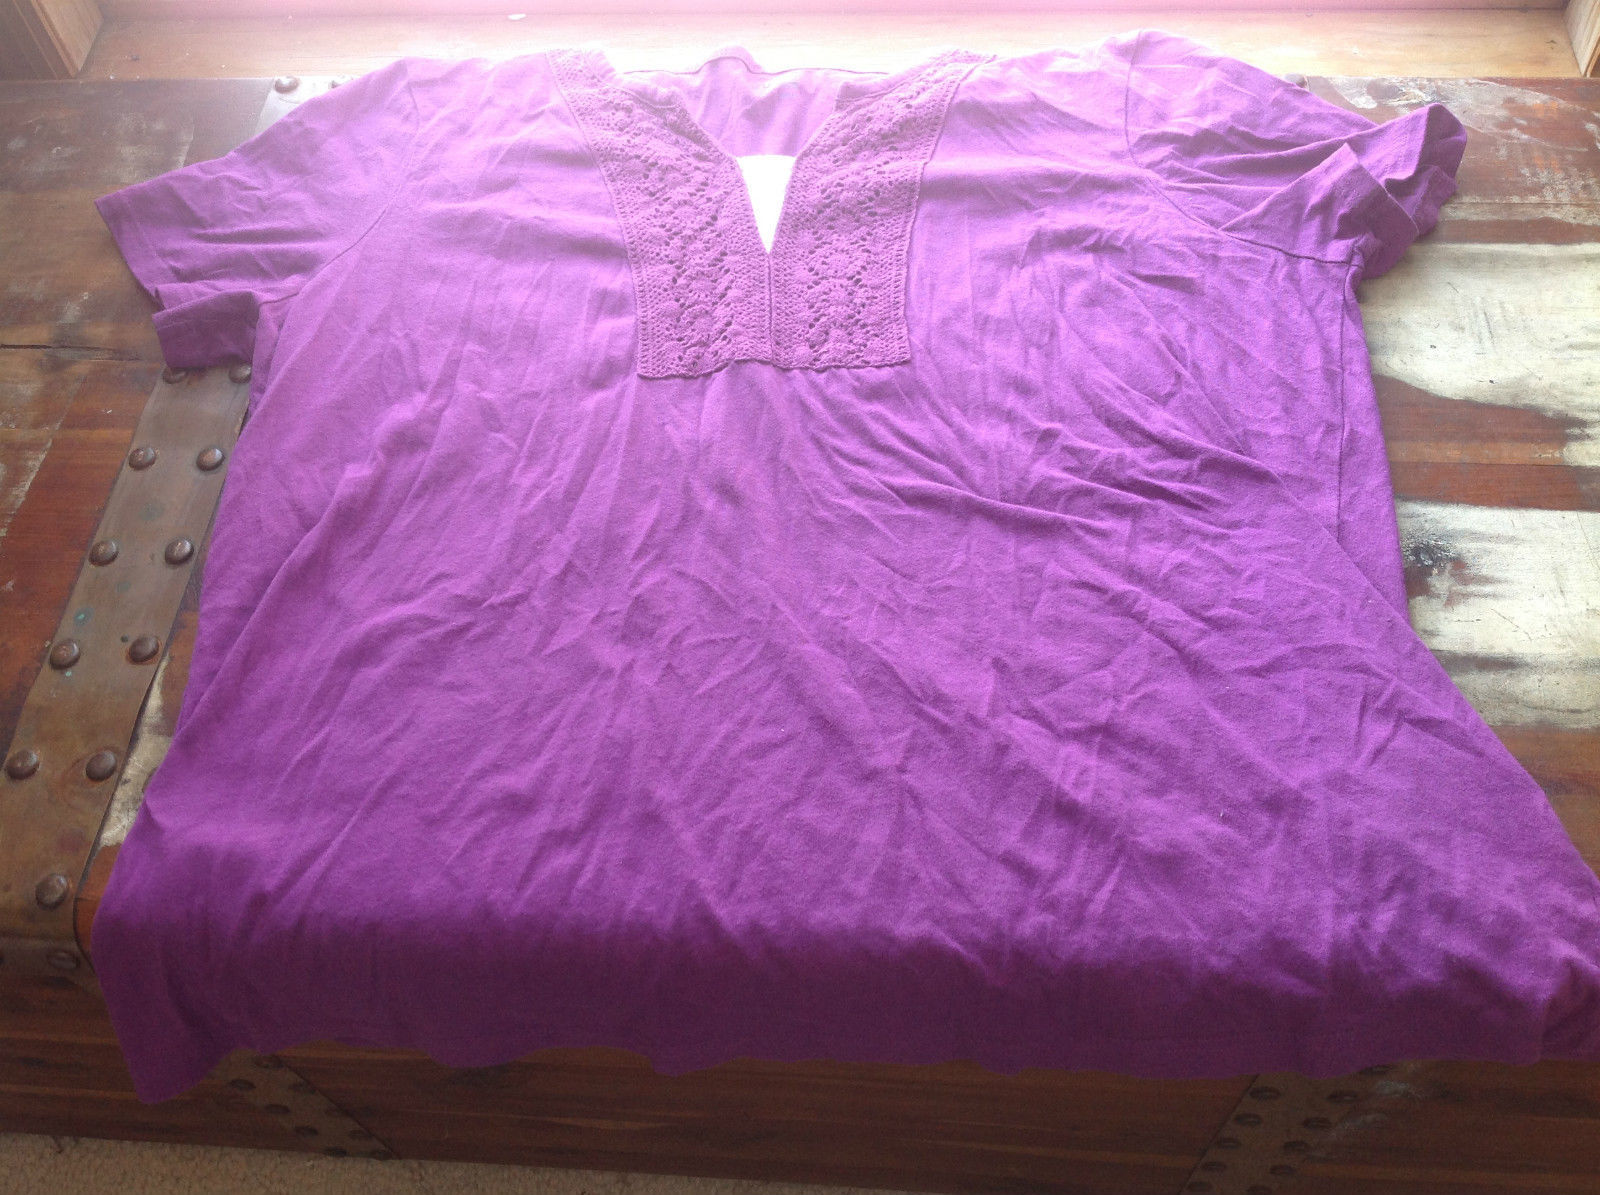 Basic Editions Short Sleeve Purple Top with Knitted Pattern at Neckline Size XL